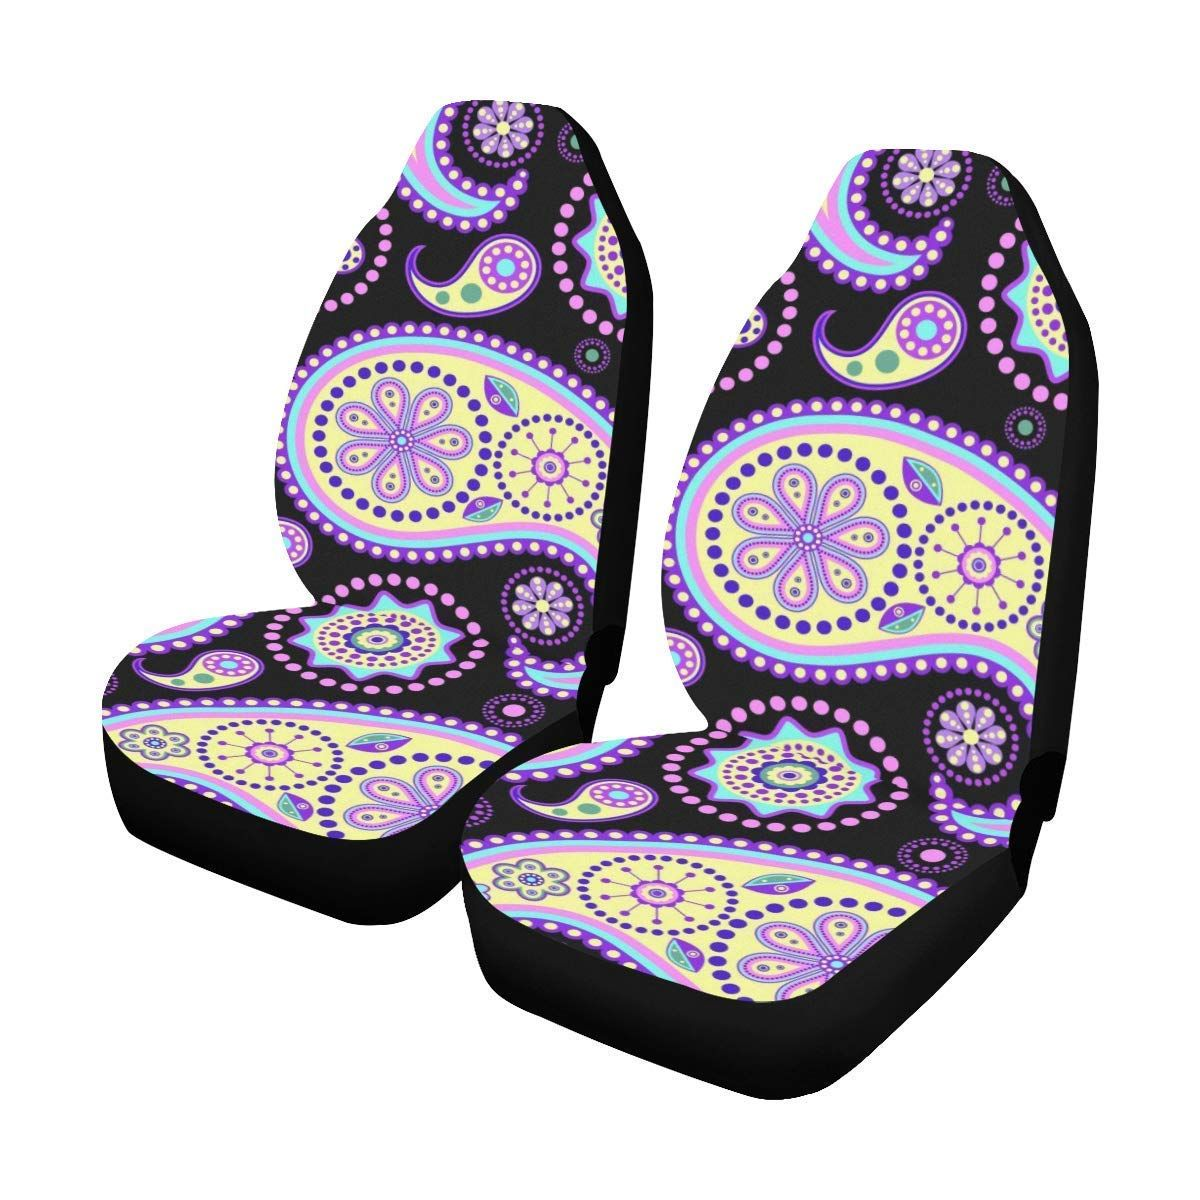 Polyester Fabric One Side Printing Protector Dust Proof Set of 2 InterestPrint Elephant Car Seat Covers